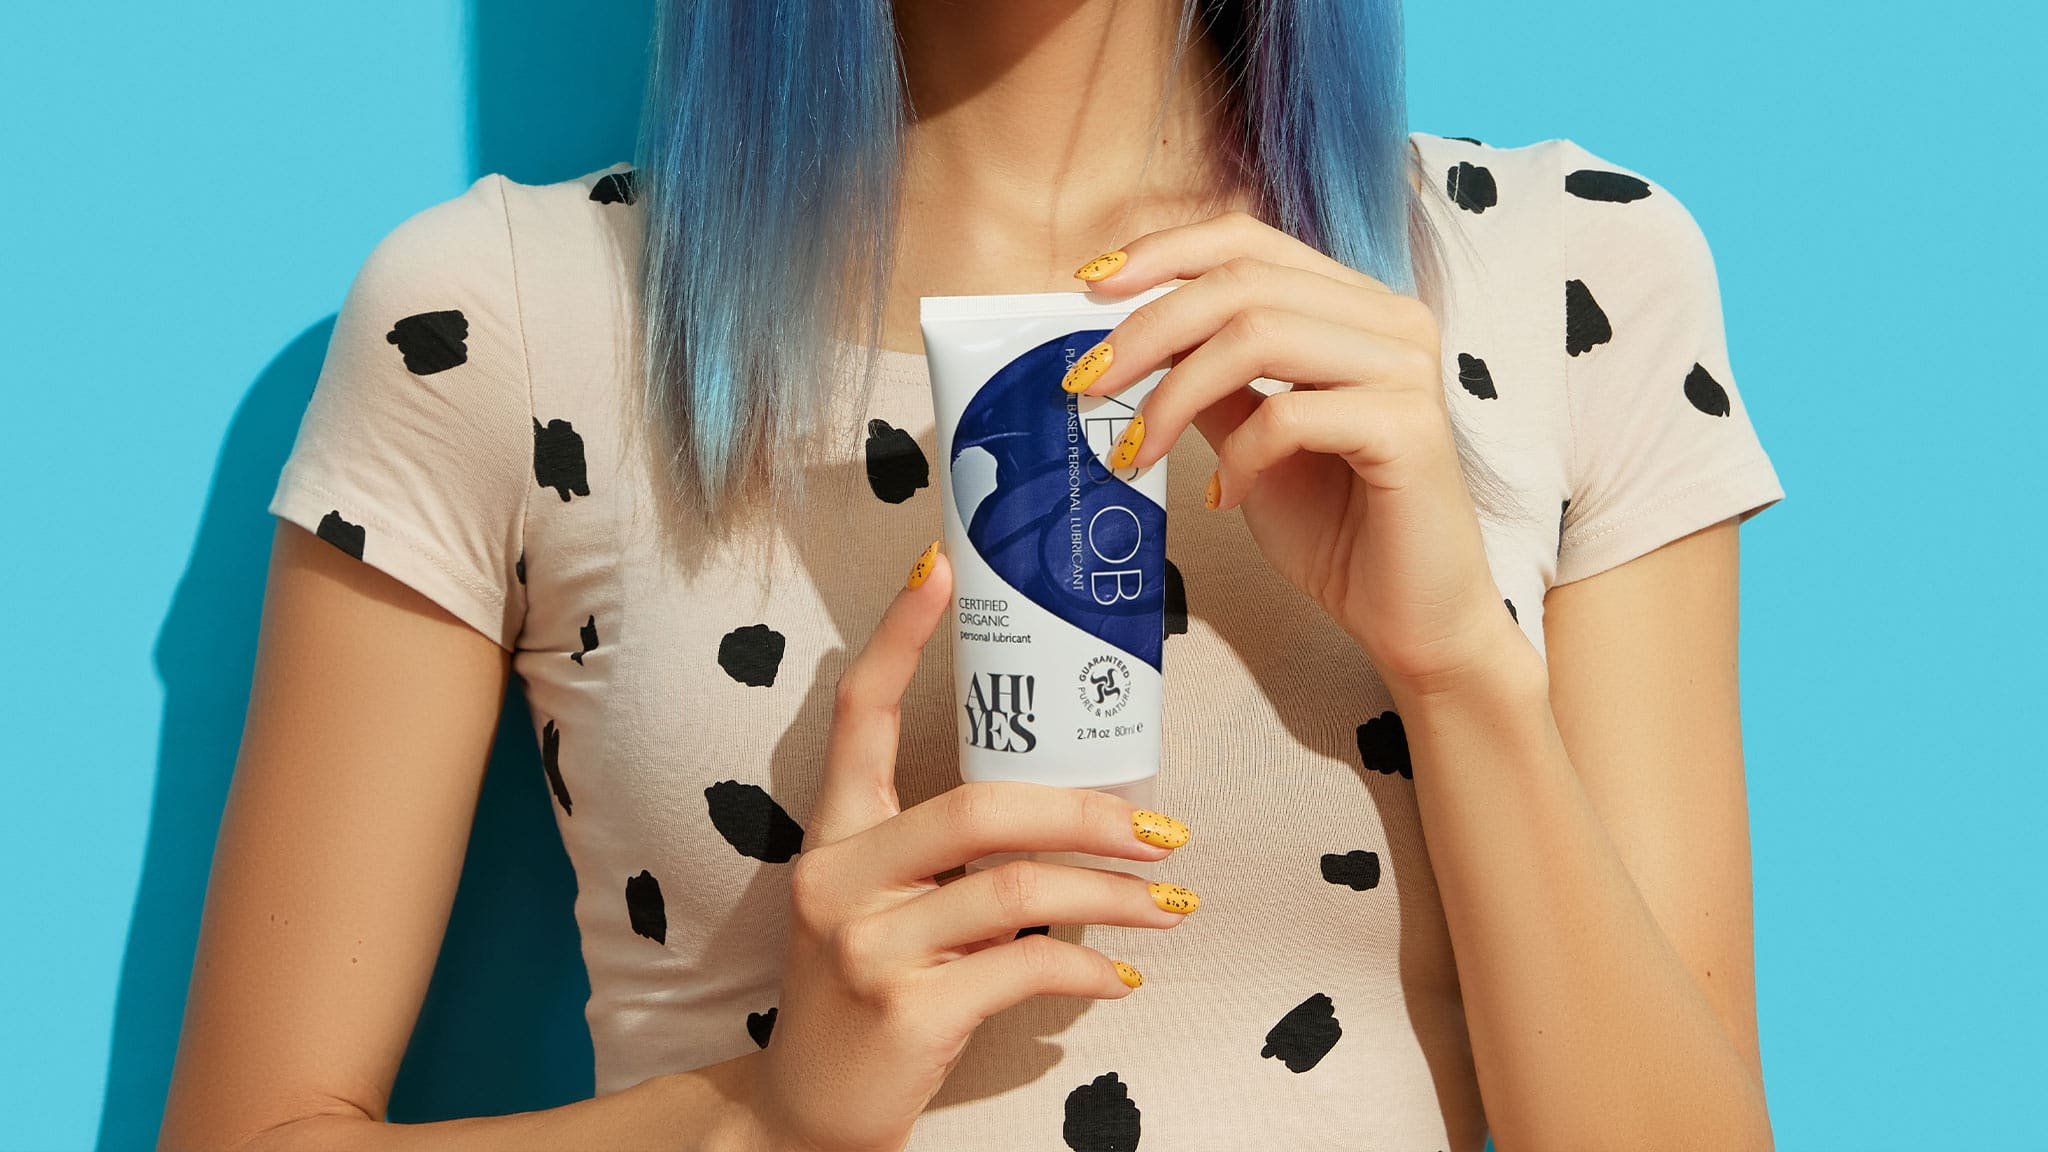 Photograph Of Blue-Haired Woman Holding A Bottle Of AH! YES OB Oil-Based Lubricant